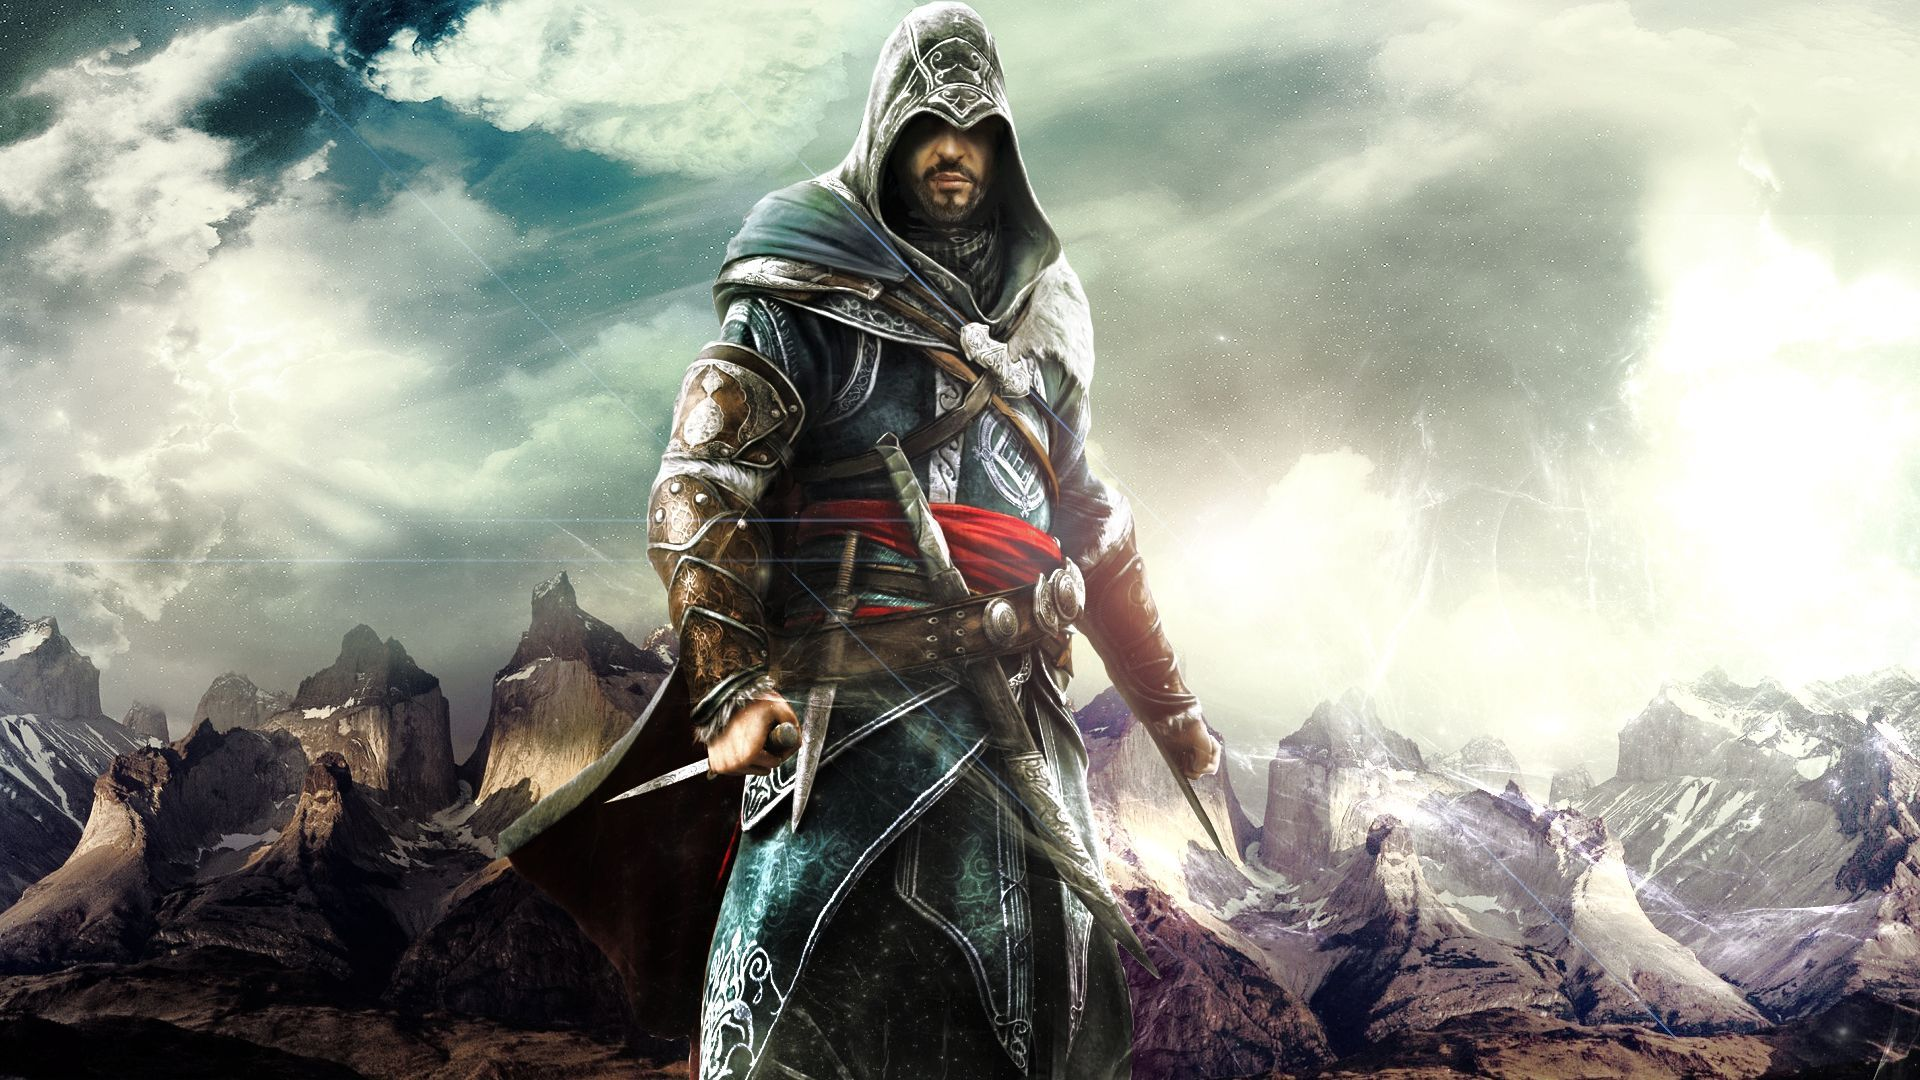 Assassin's Creed Revelations Wallpapers - Top Free Assassin's Creed Revelations Backgrounds - WallpaperAccess